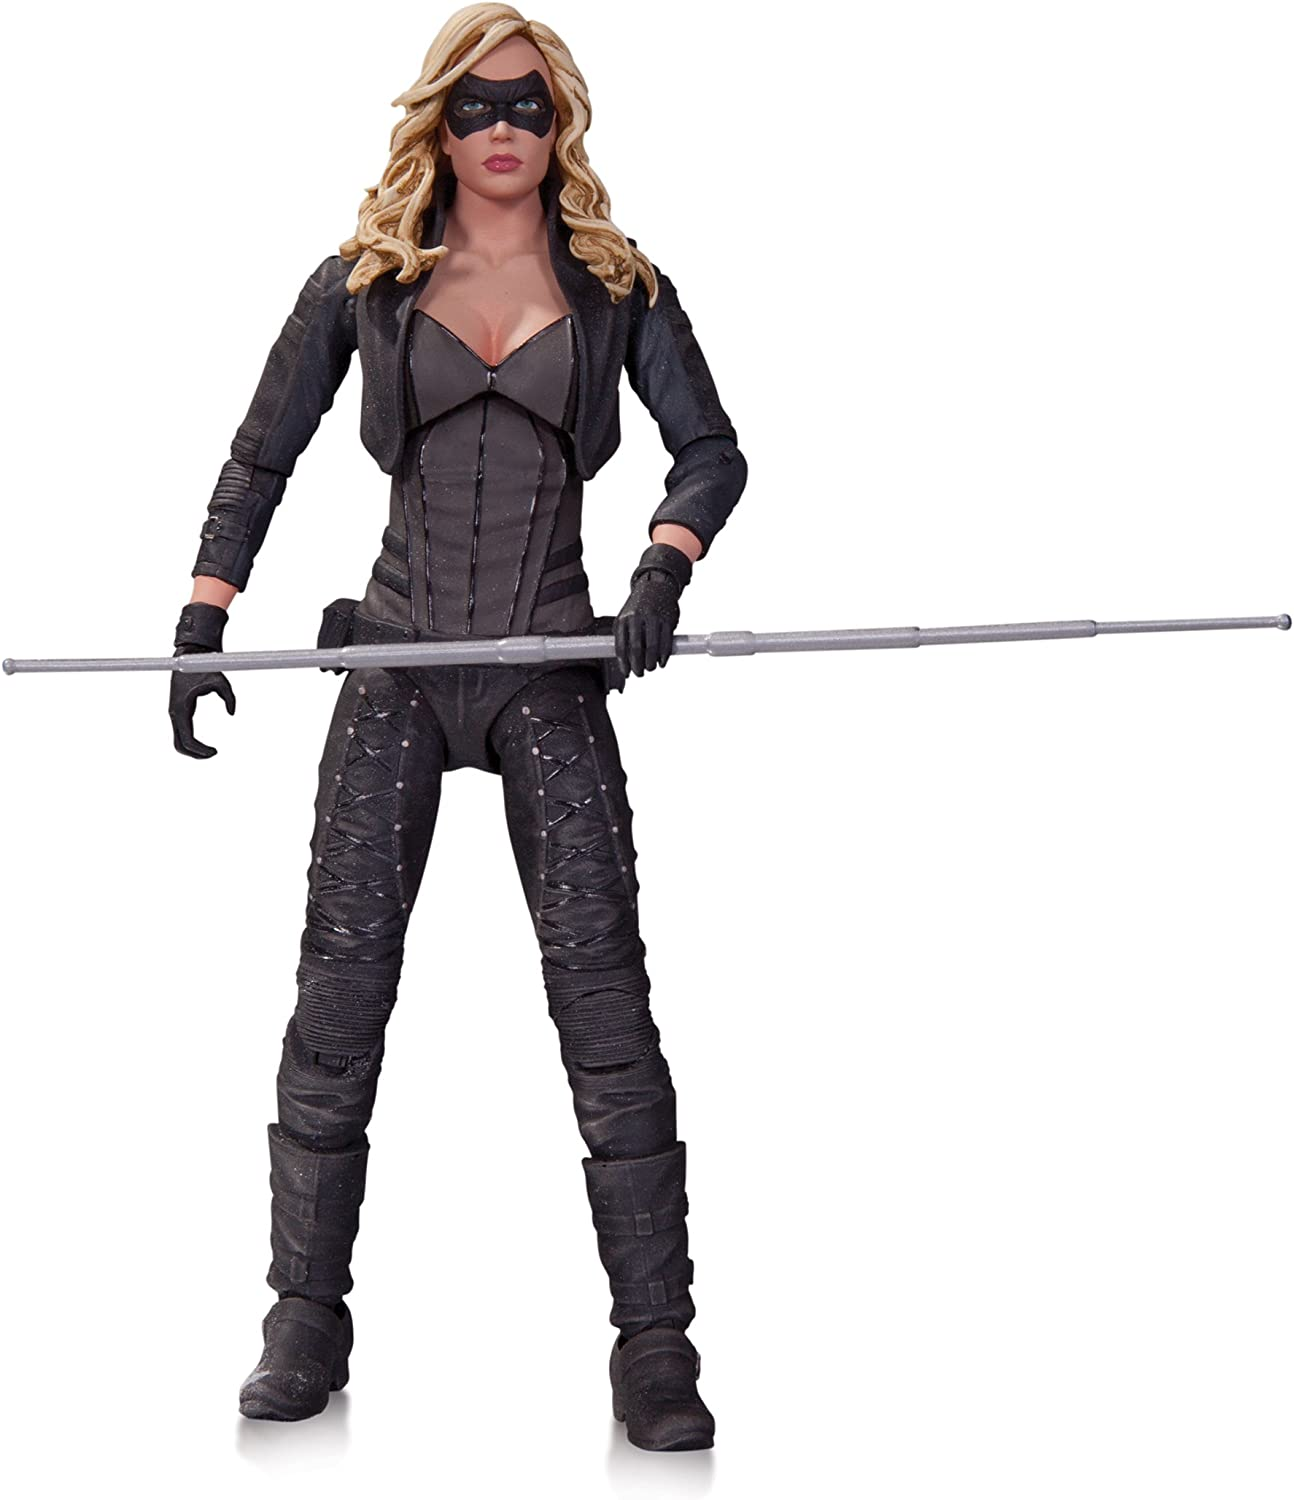 Arrow Tv Series Black Canary Action Figure Dc Collectibles